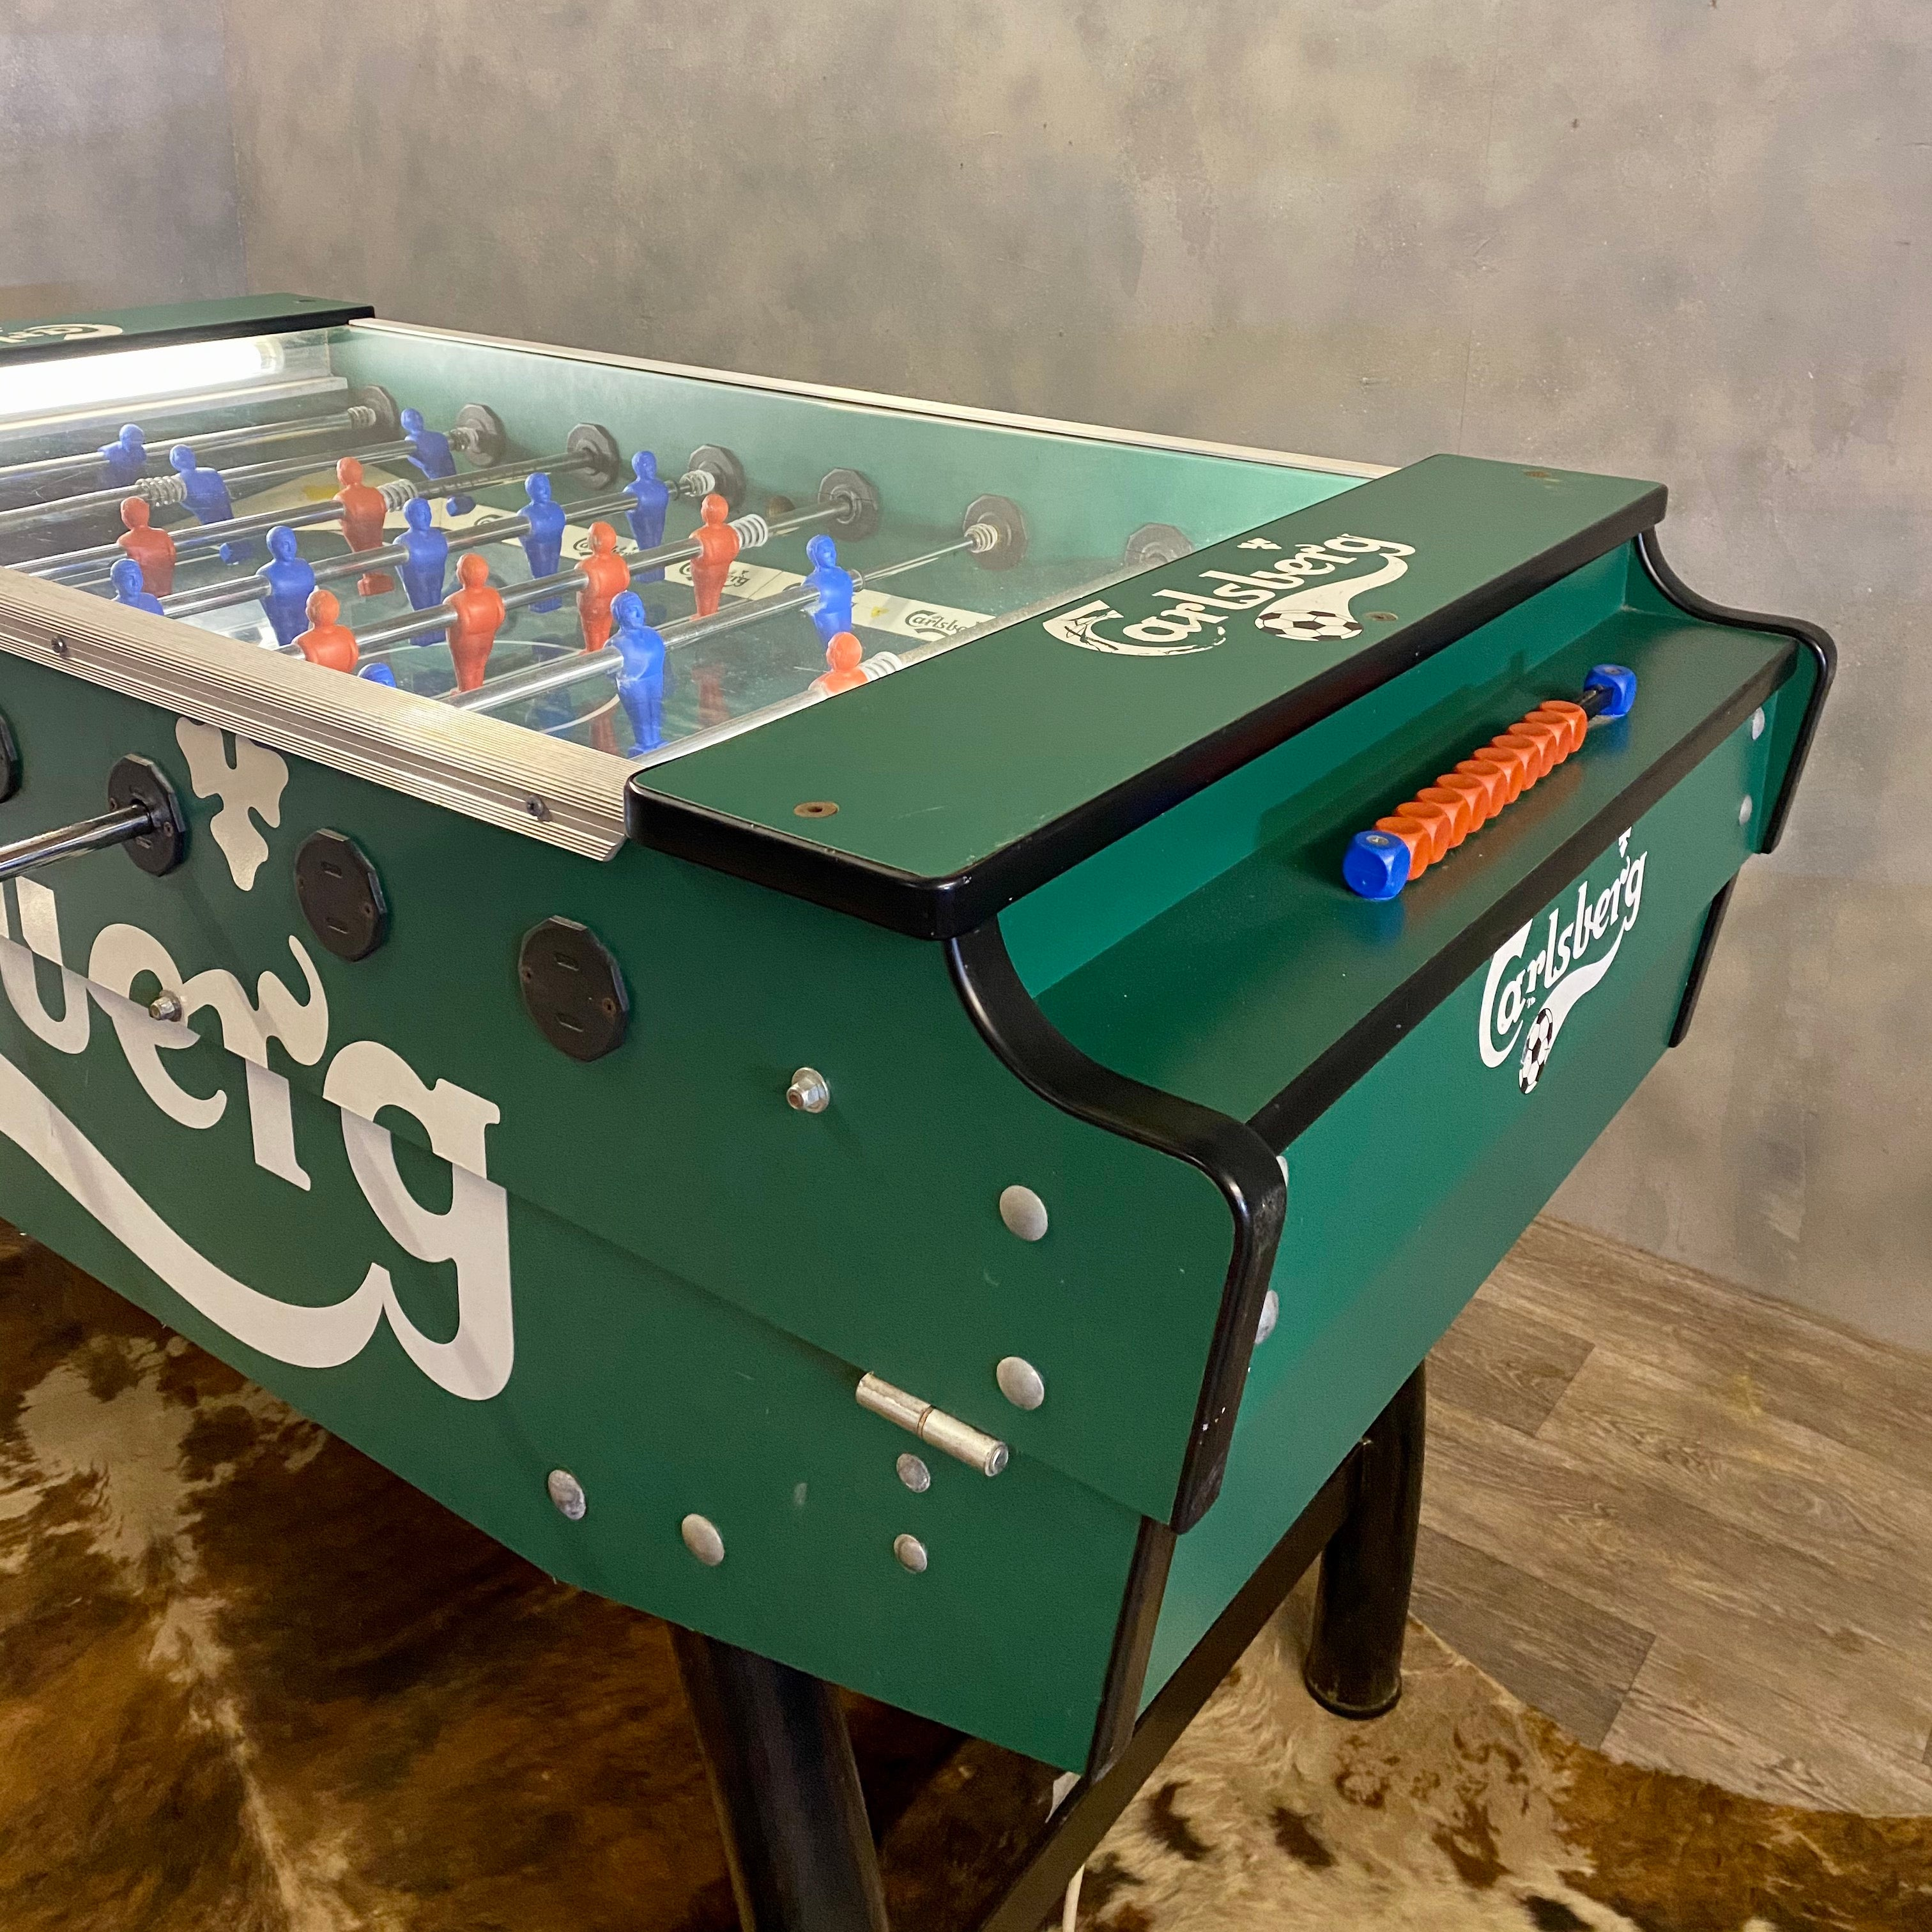 Commercial table football